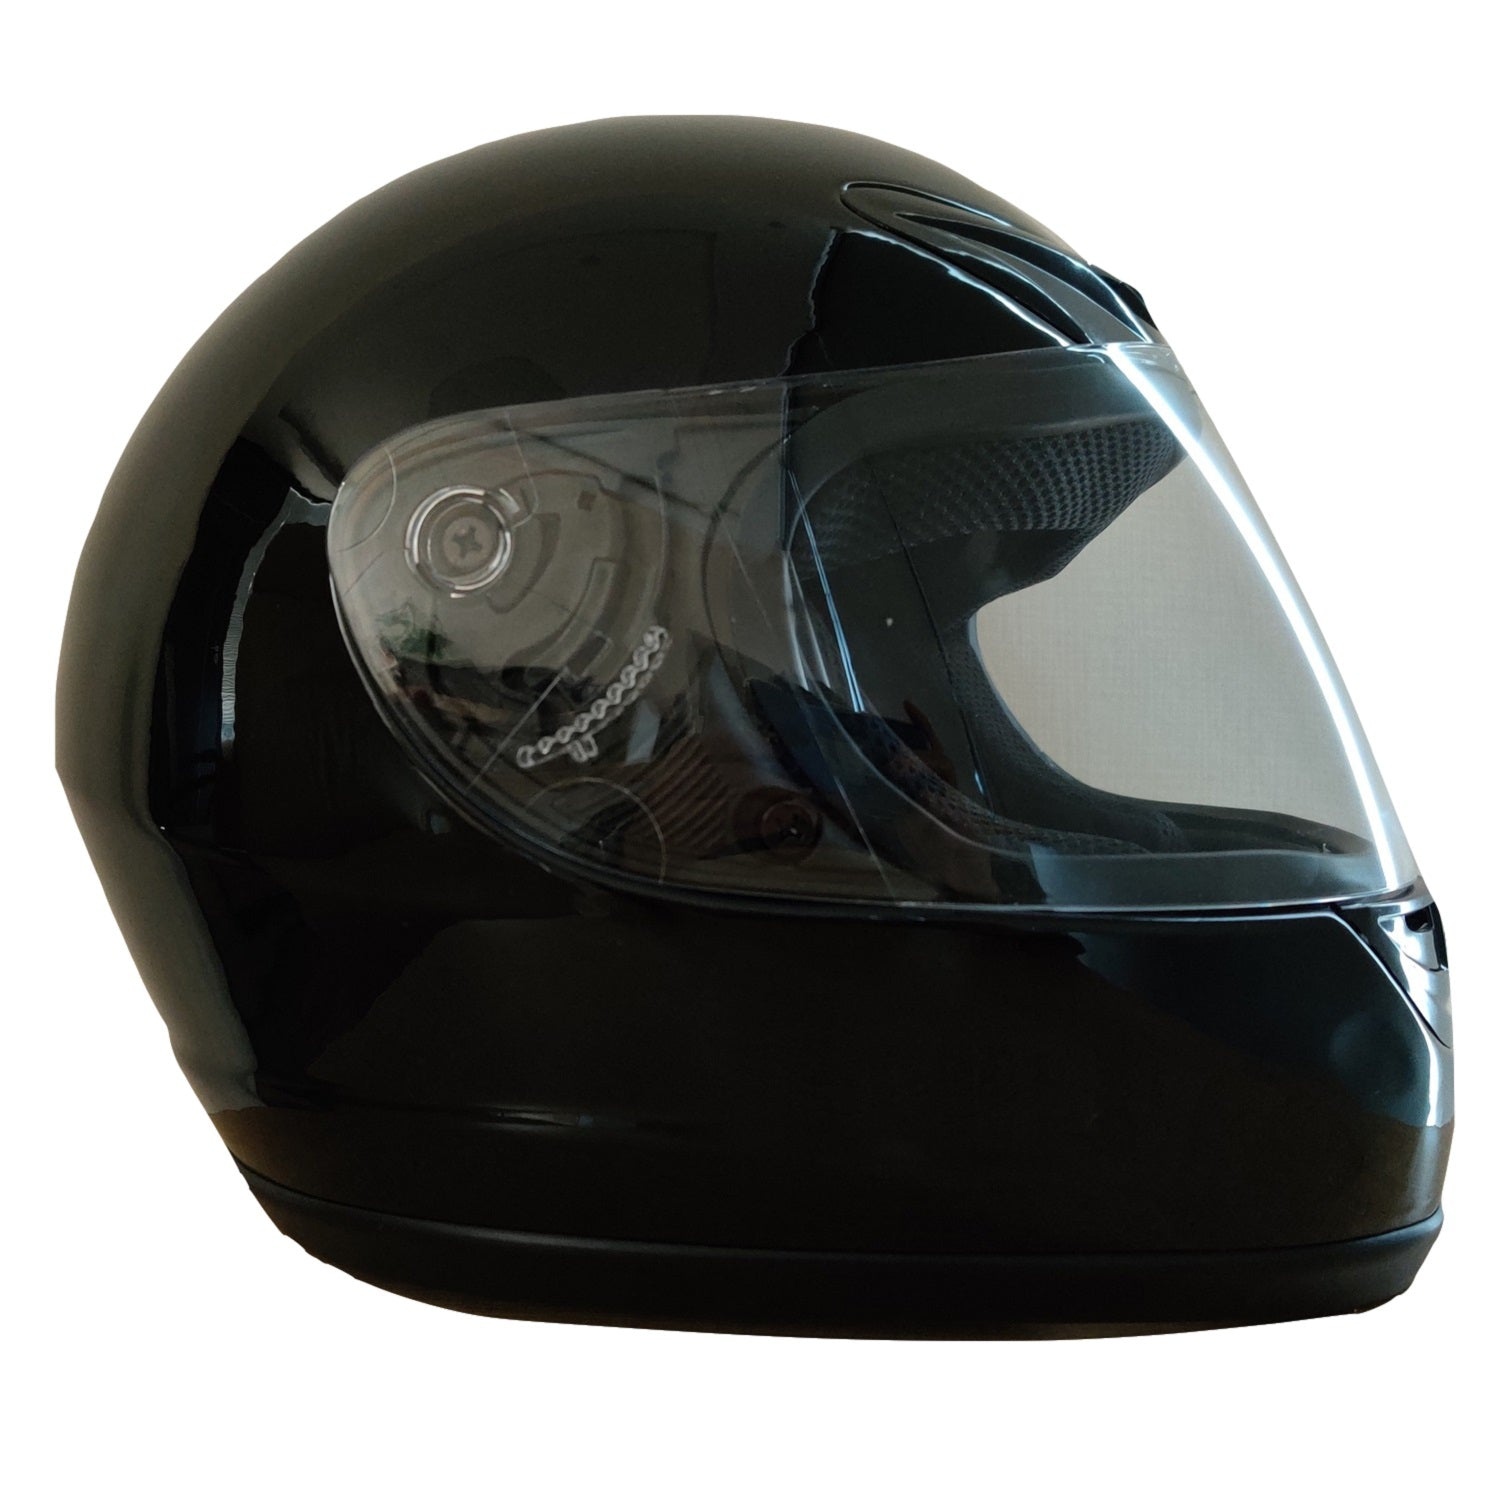 GOTRAX Full Faced Motorcycle Helmet (medium)